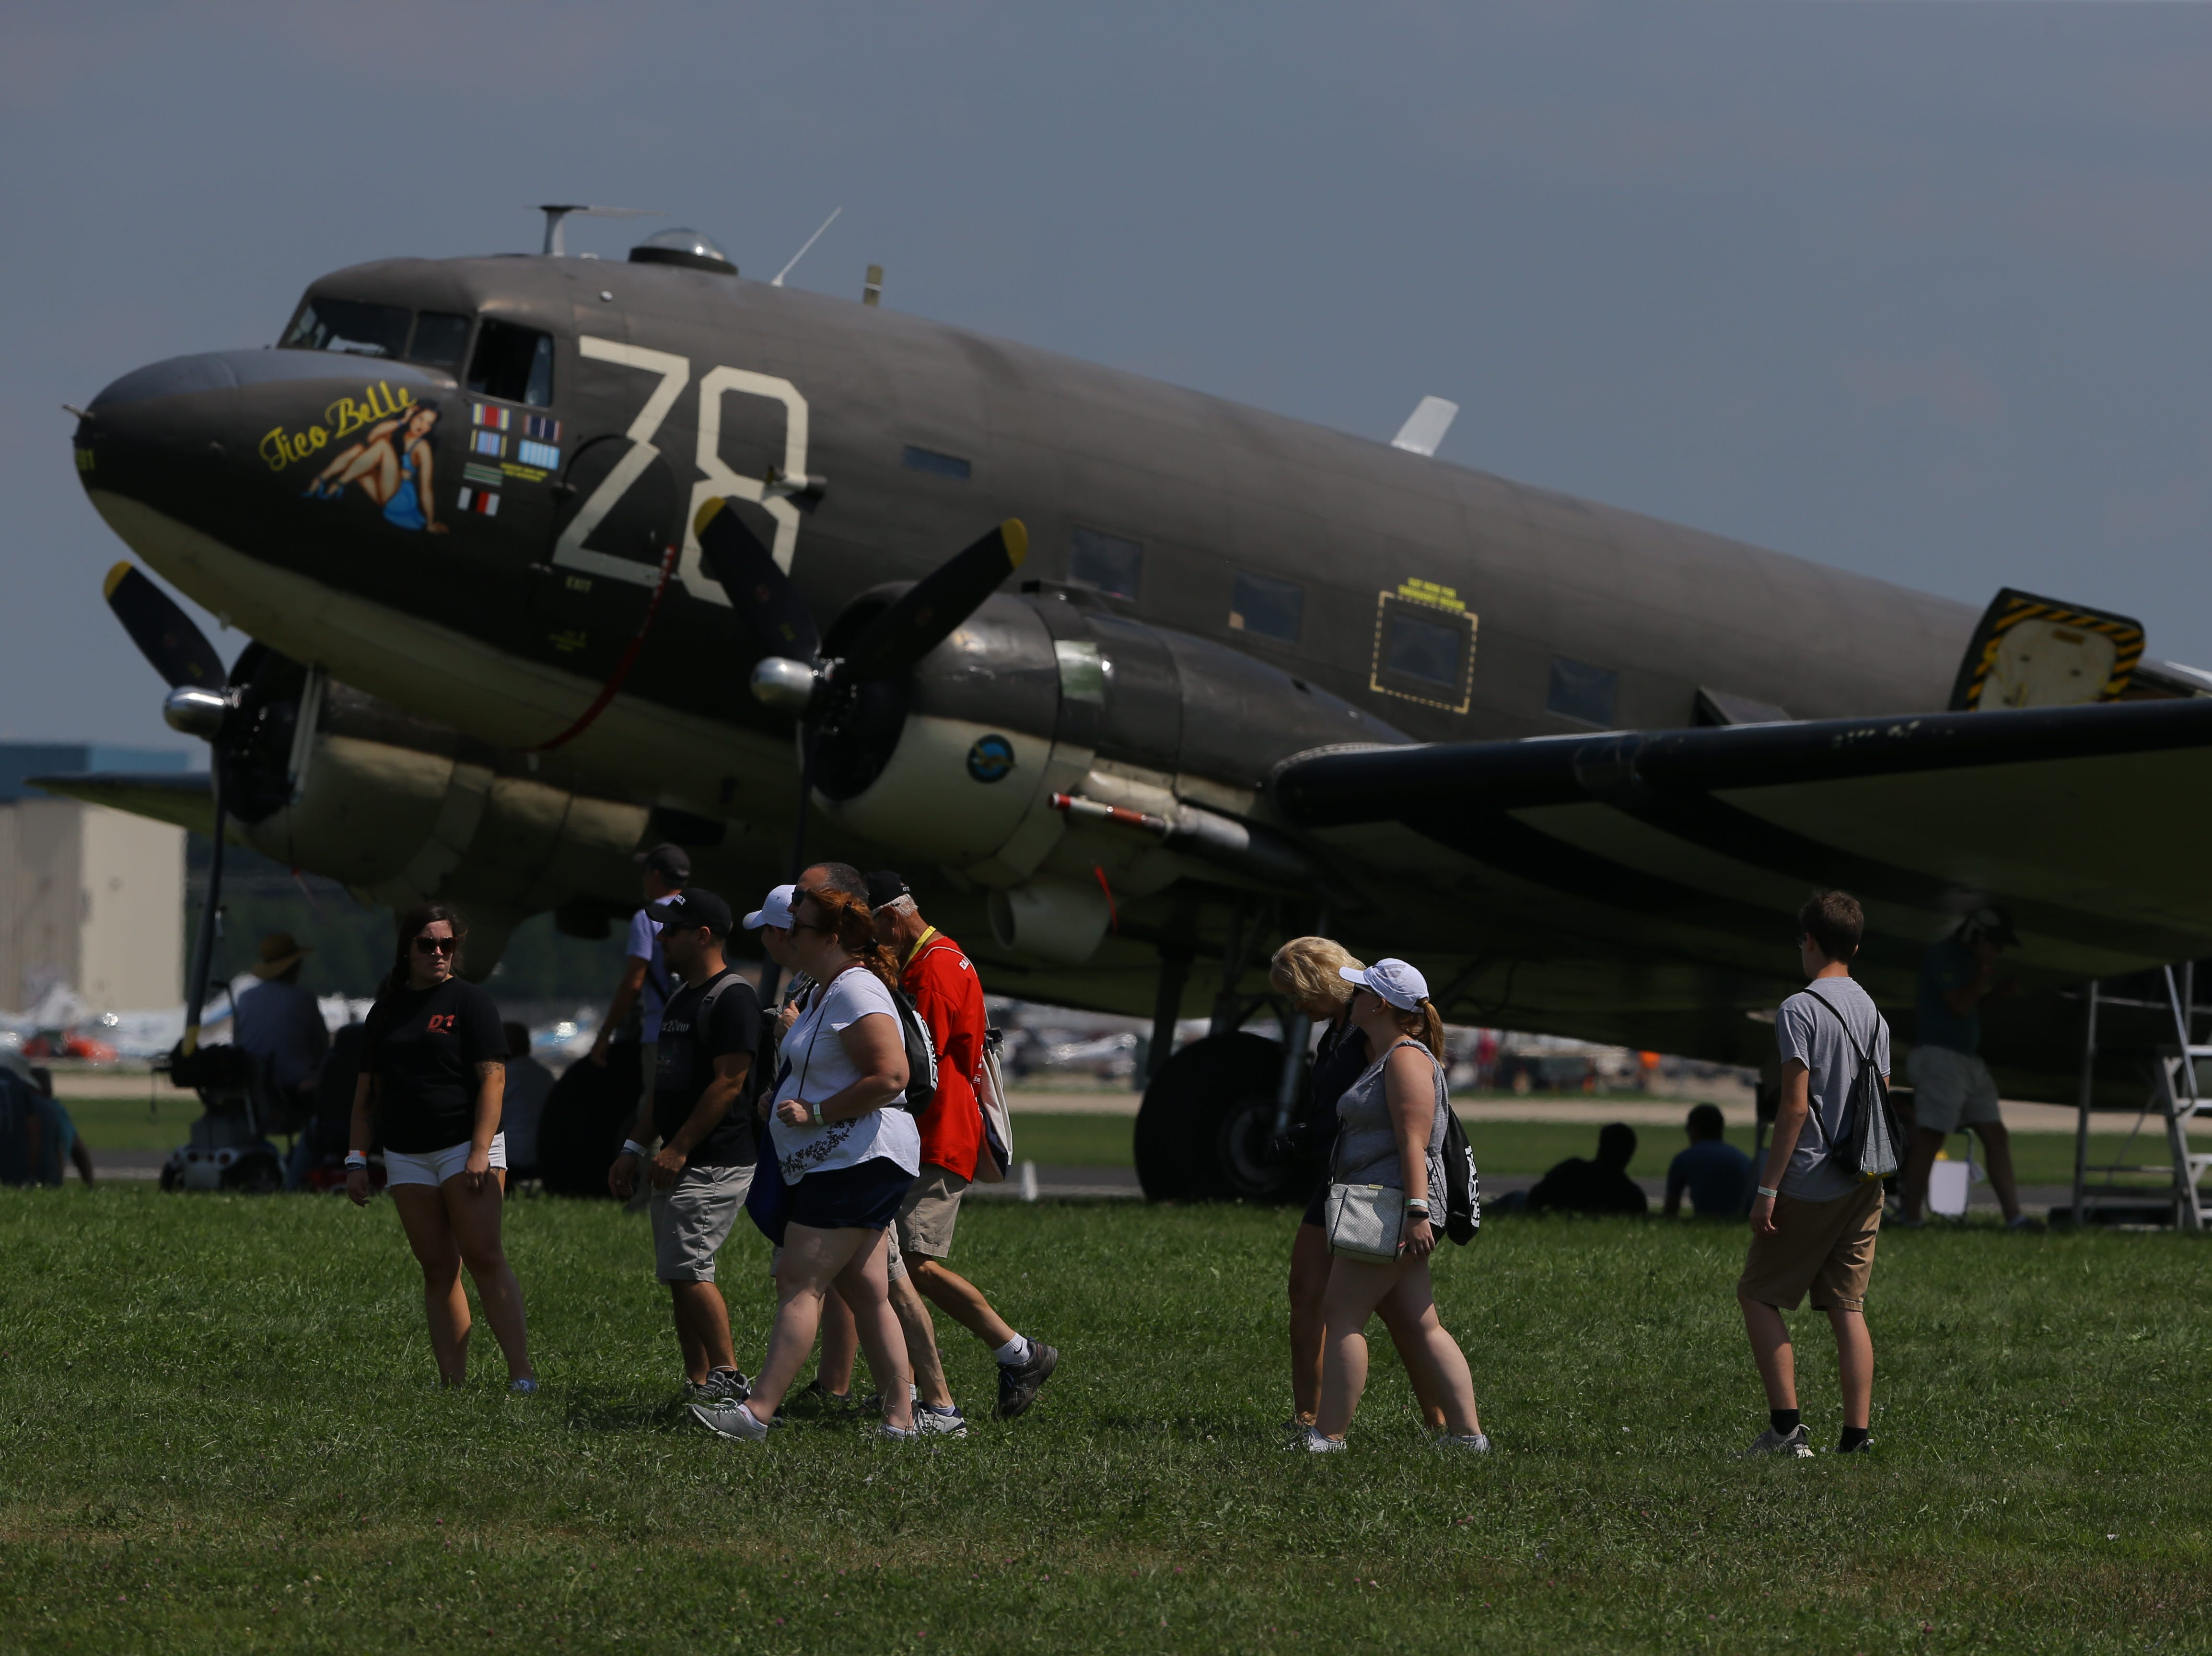 Warbirds were popular with spectators, Tuesday, July 24, 2018, in Oshkosh, Wis.  The 66th annual Experimental Aircraft Association Fly-In Convention, AirVenture 2018 draws over 500,000 people annually to the area.  The convention runs through July 29. Joe Sienkiewicz/USA Today NETWORK-Wisconsin